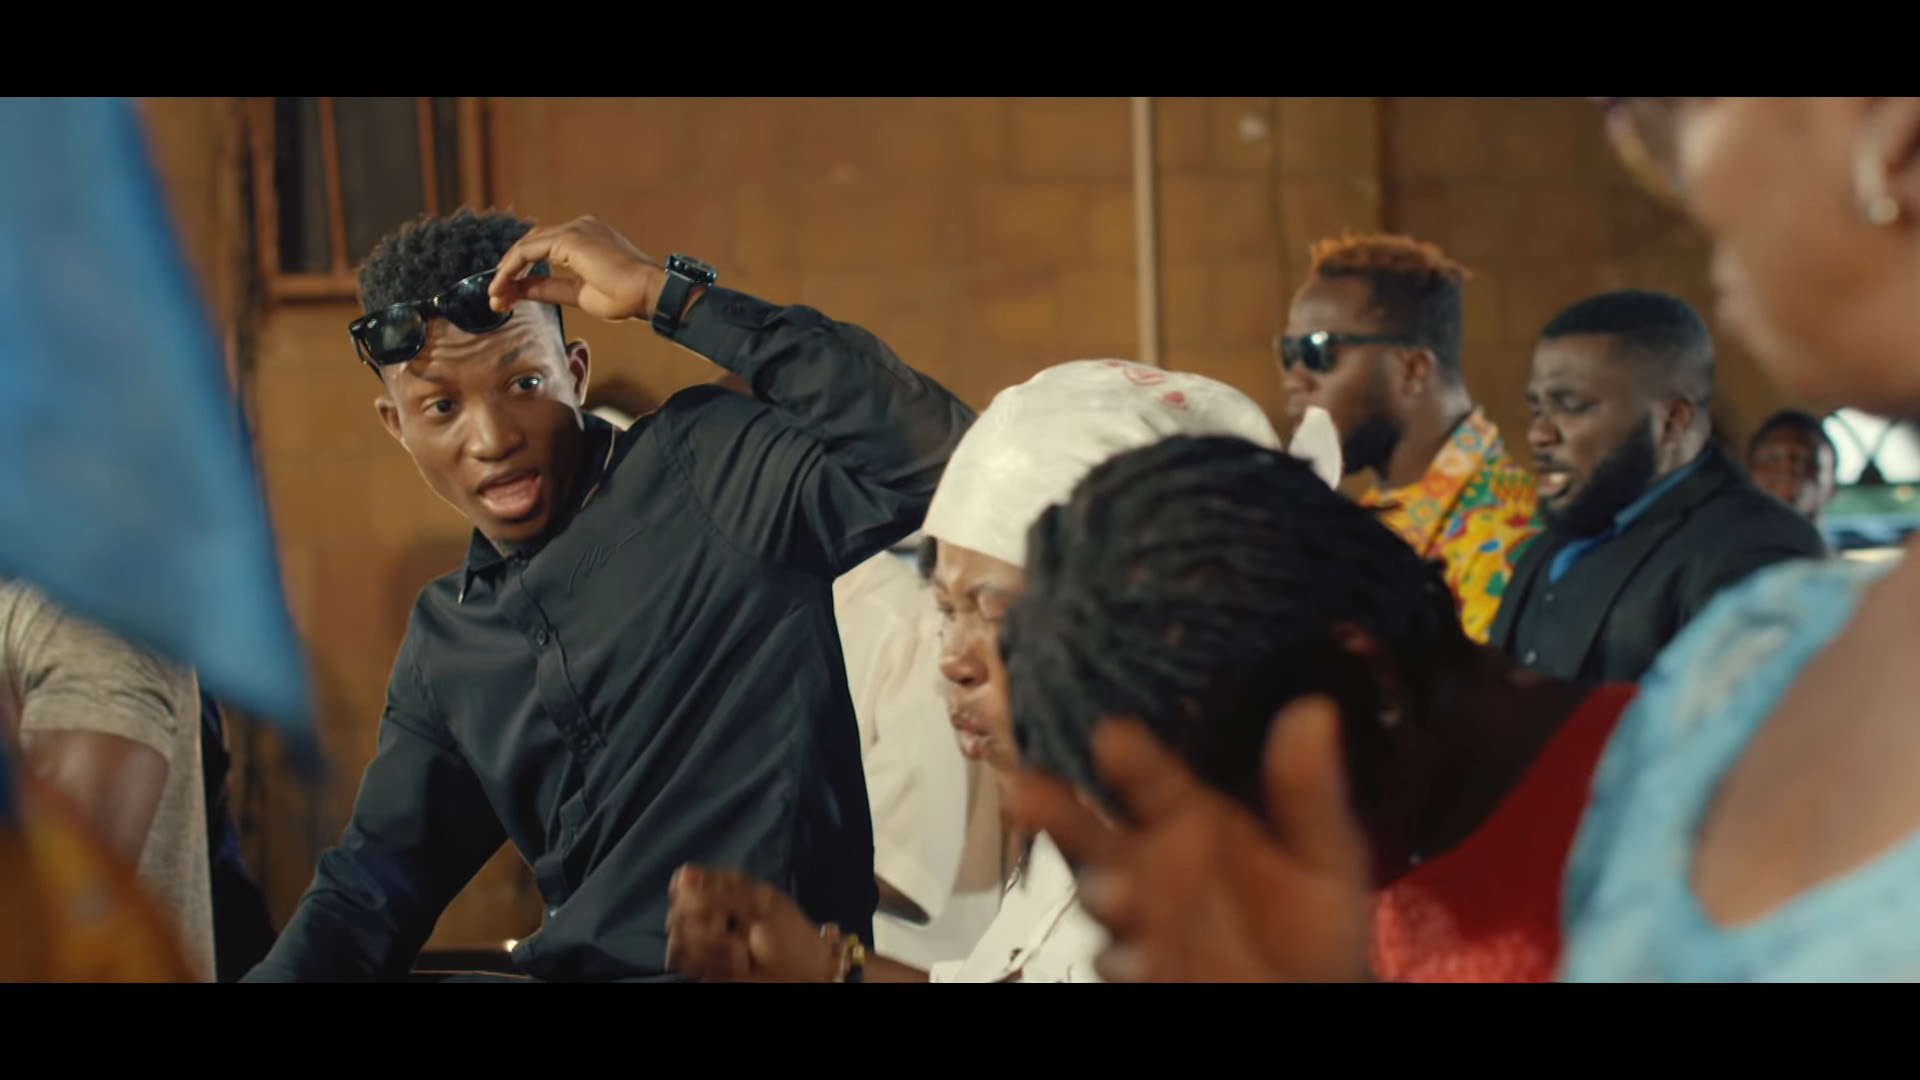 Kofi Kinaata's 'Things Fall Apart' tops charts after release of #1 trending video on YouTube